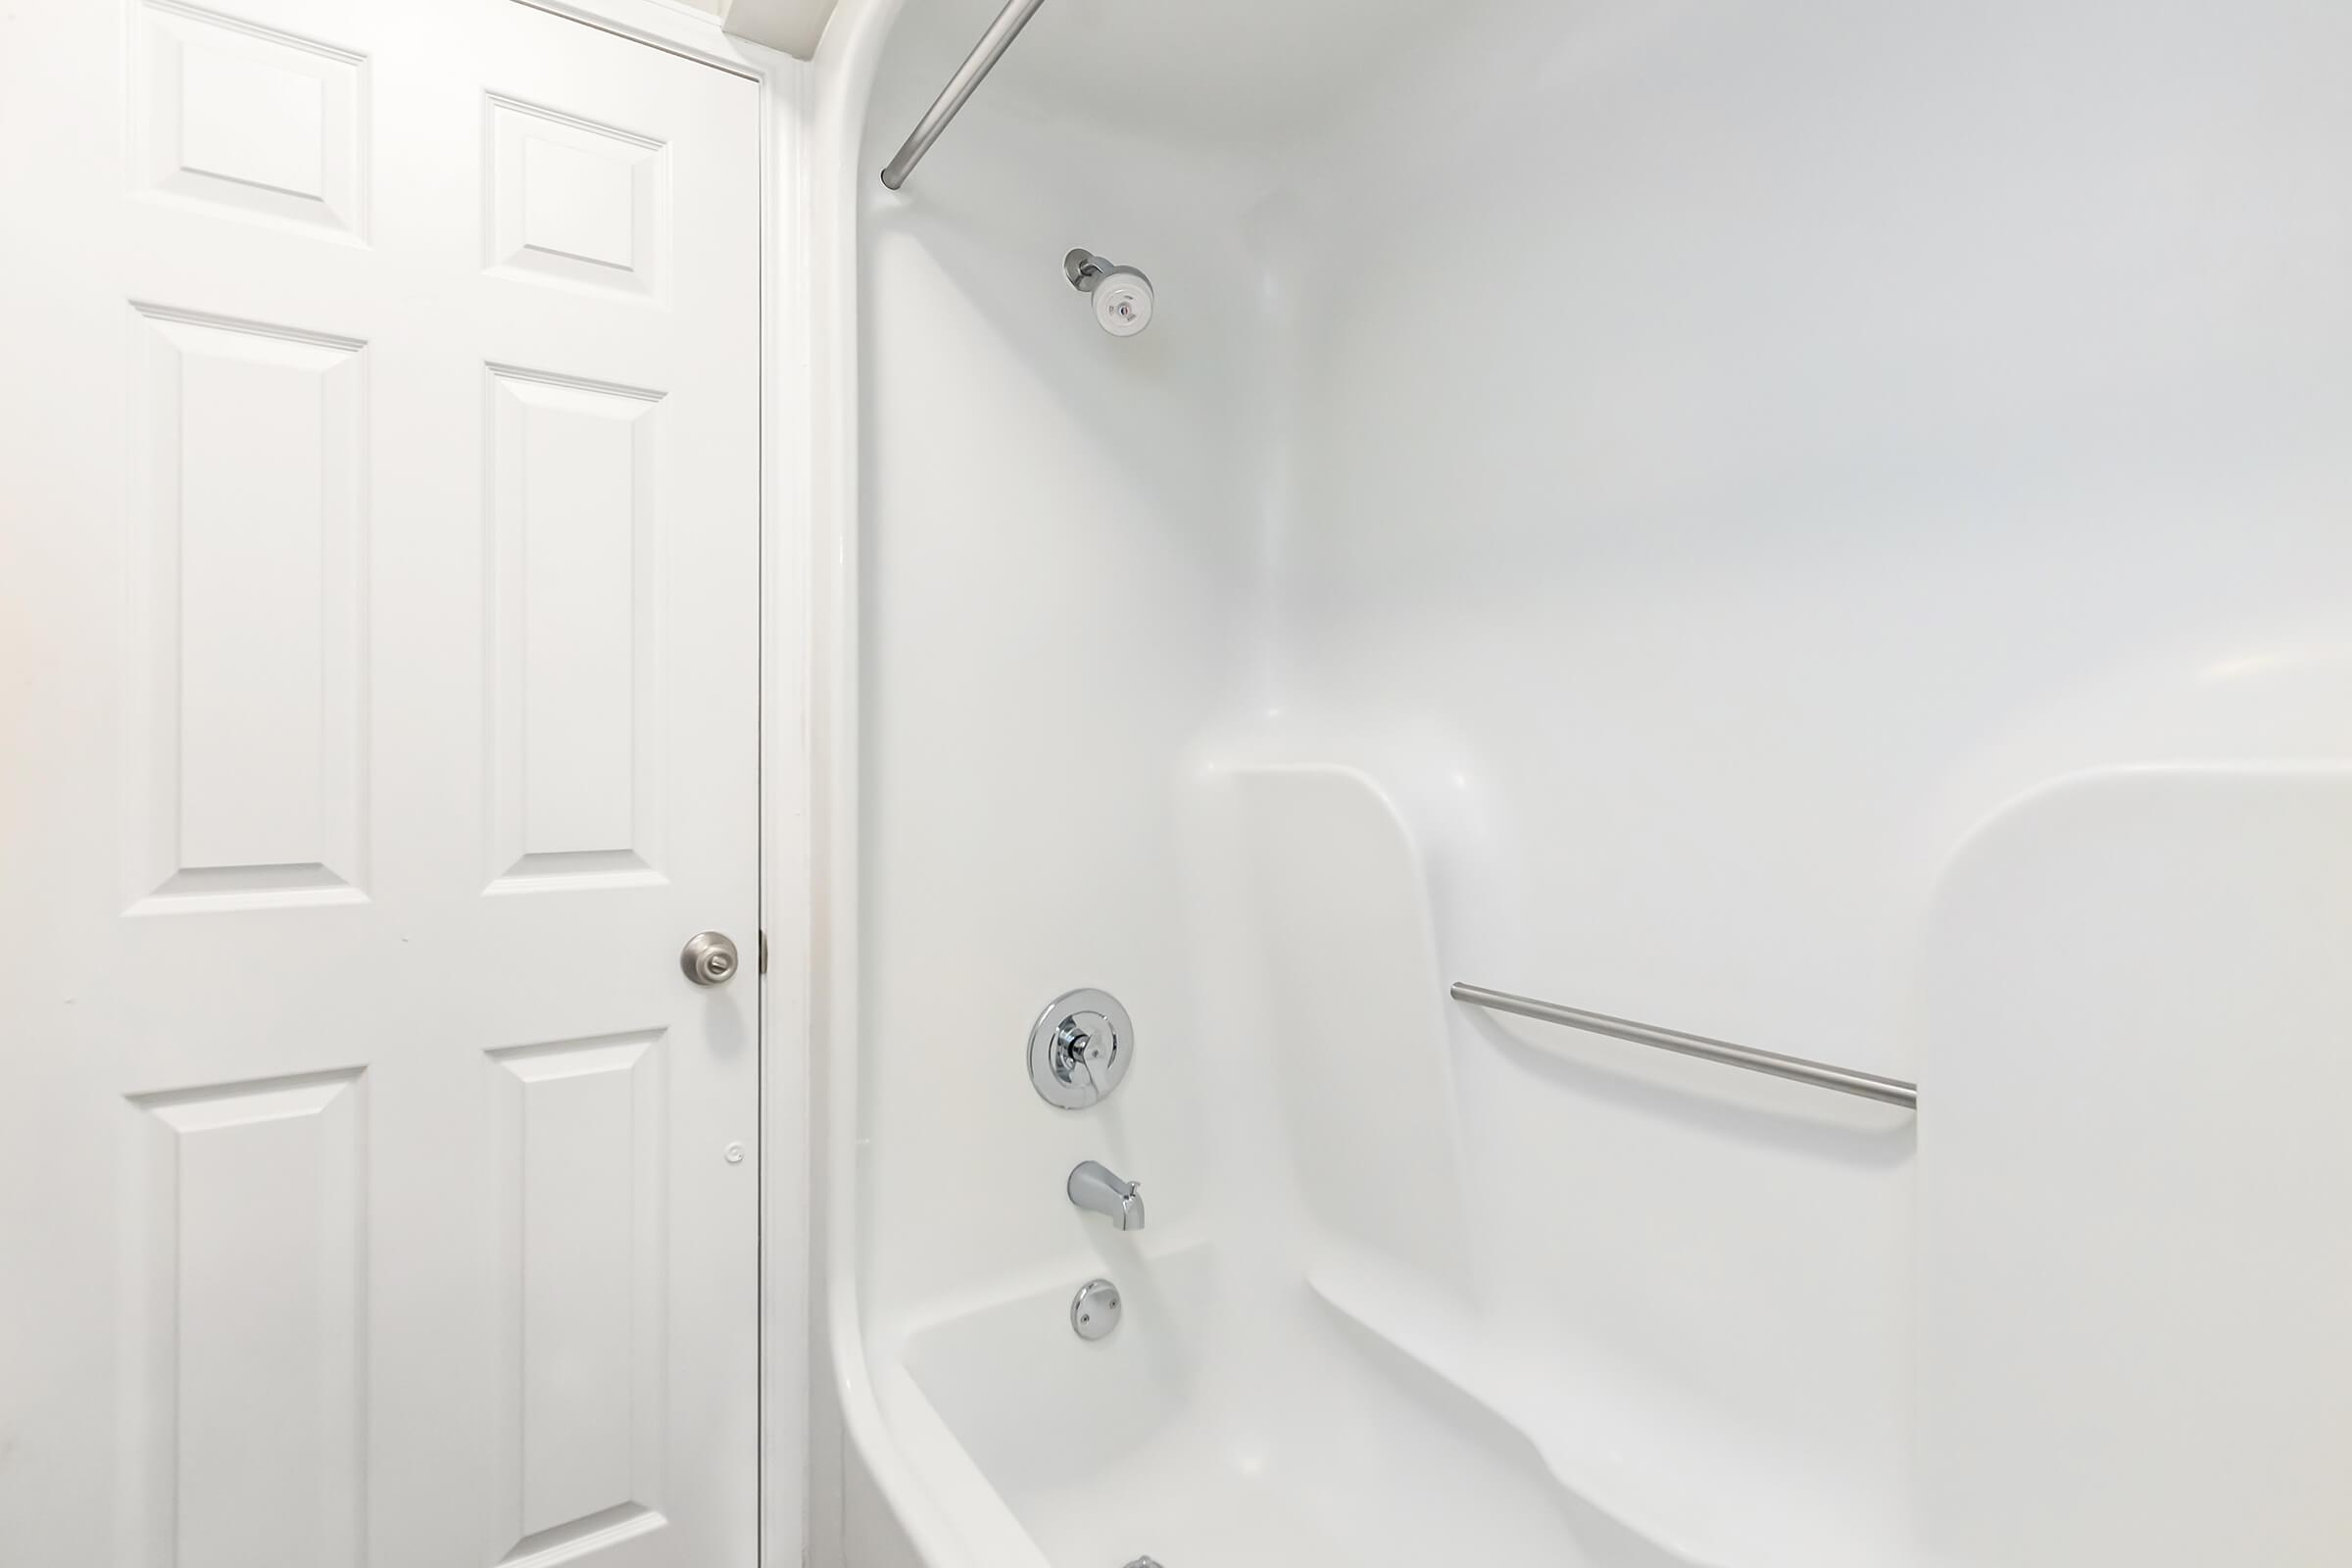 Bathtub and shower at Graymere in Columbia, Tennessee